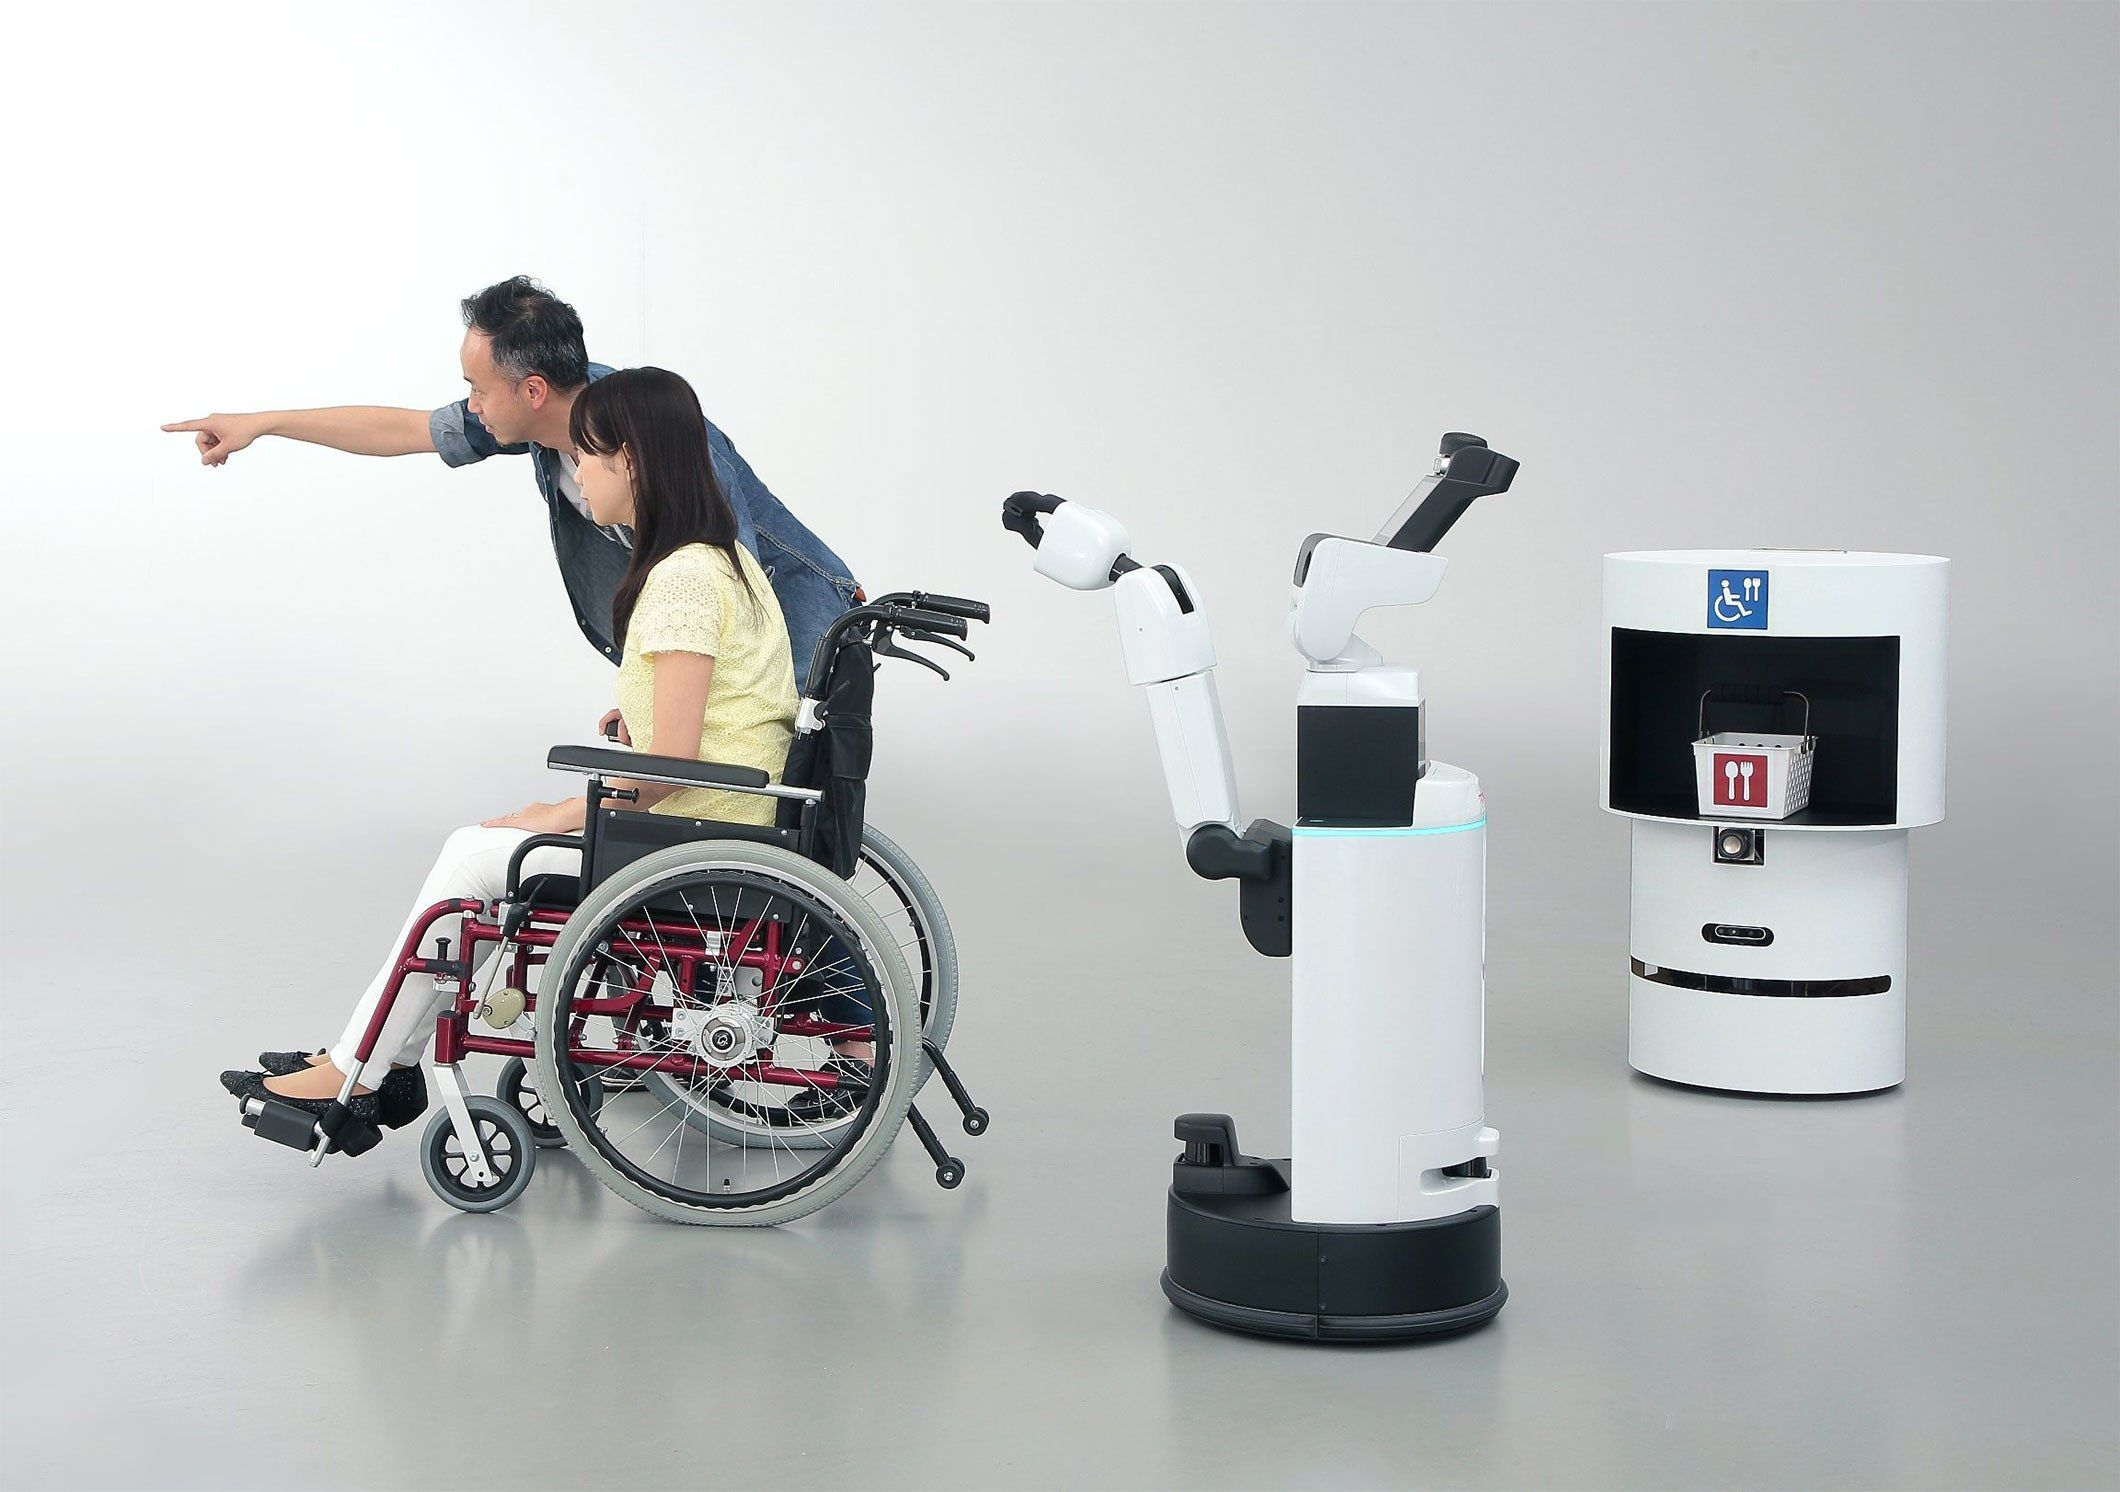 Toyota helper robots for the Tokyo 2020 Olympics